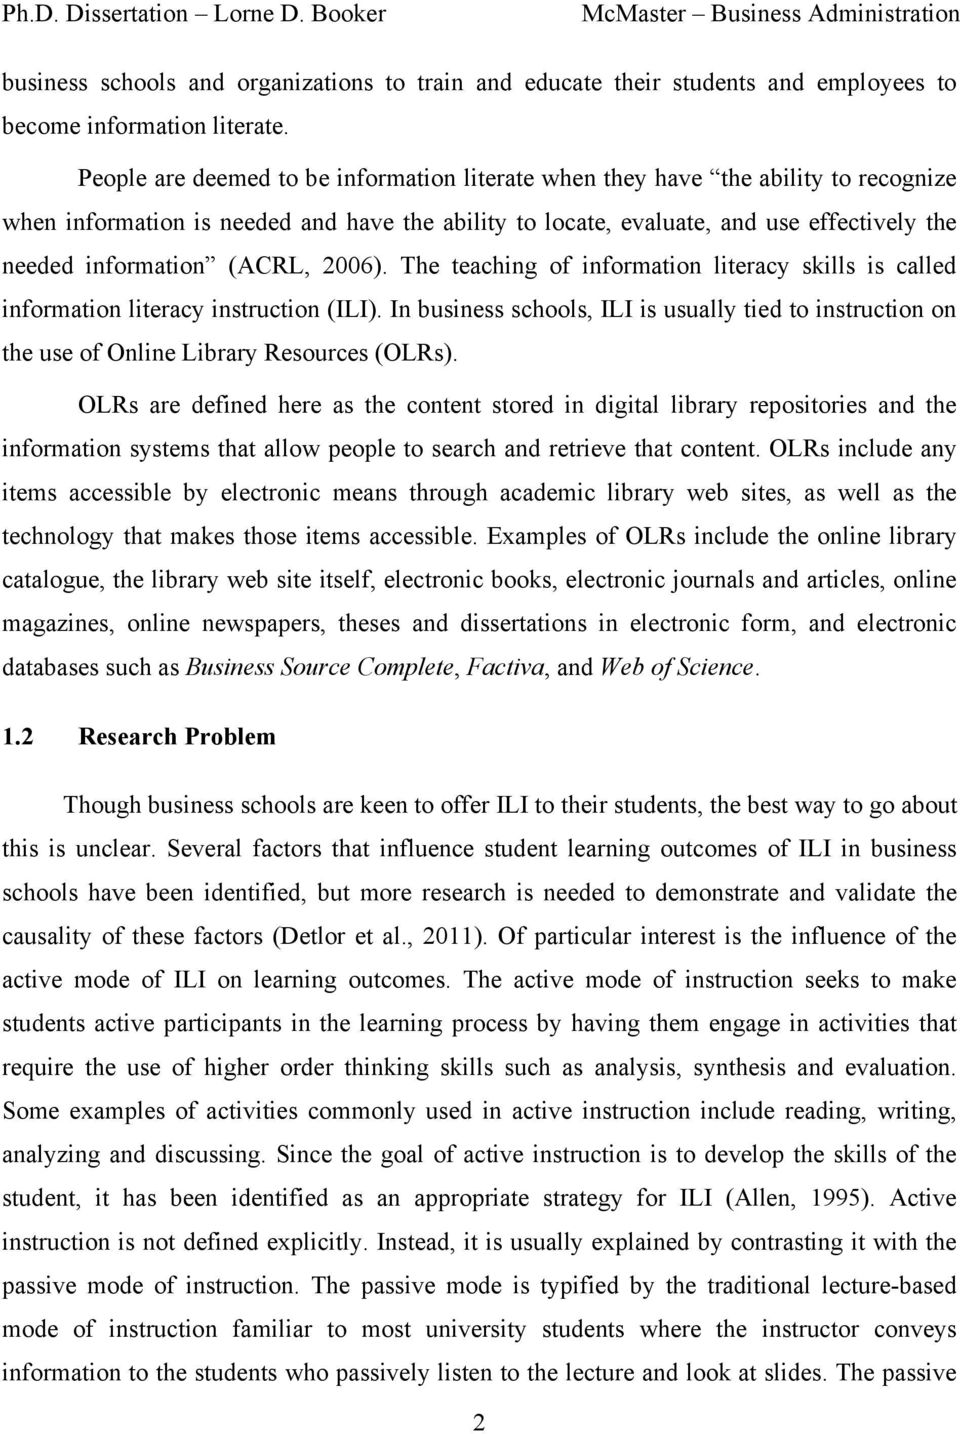 (ACRL, 2006). The teaching of information literacy skills is called information literacy instruction (ILI).